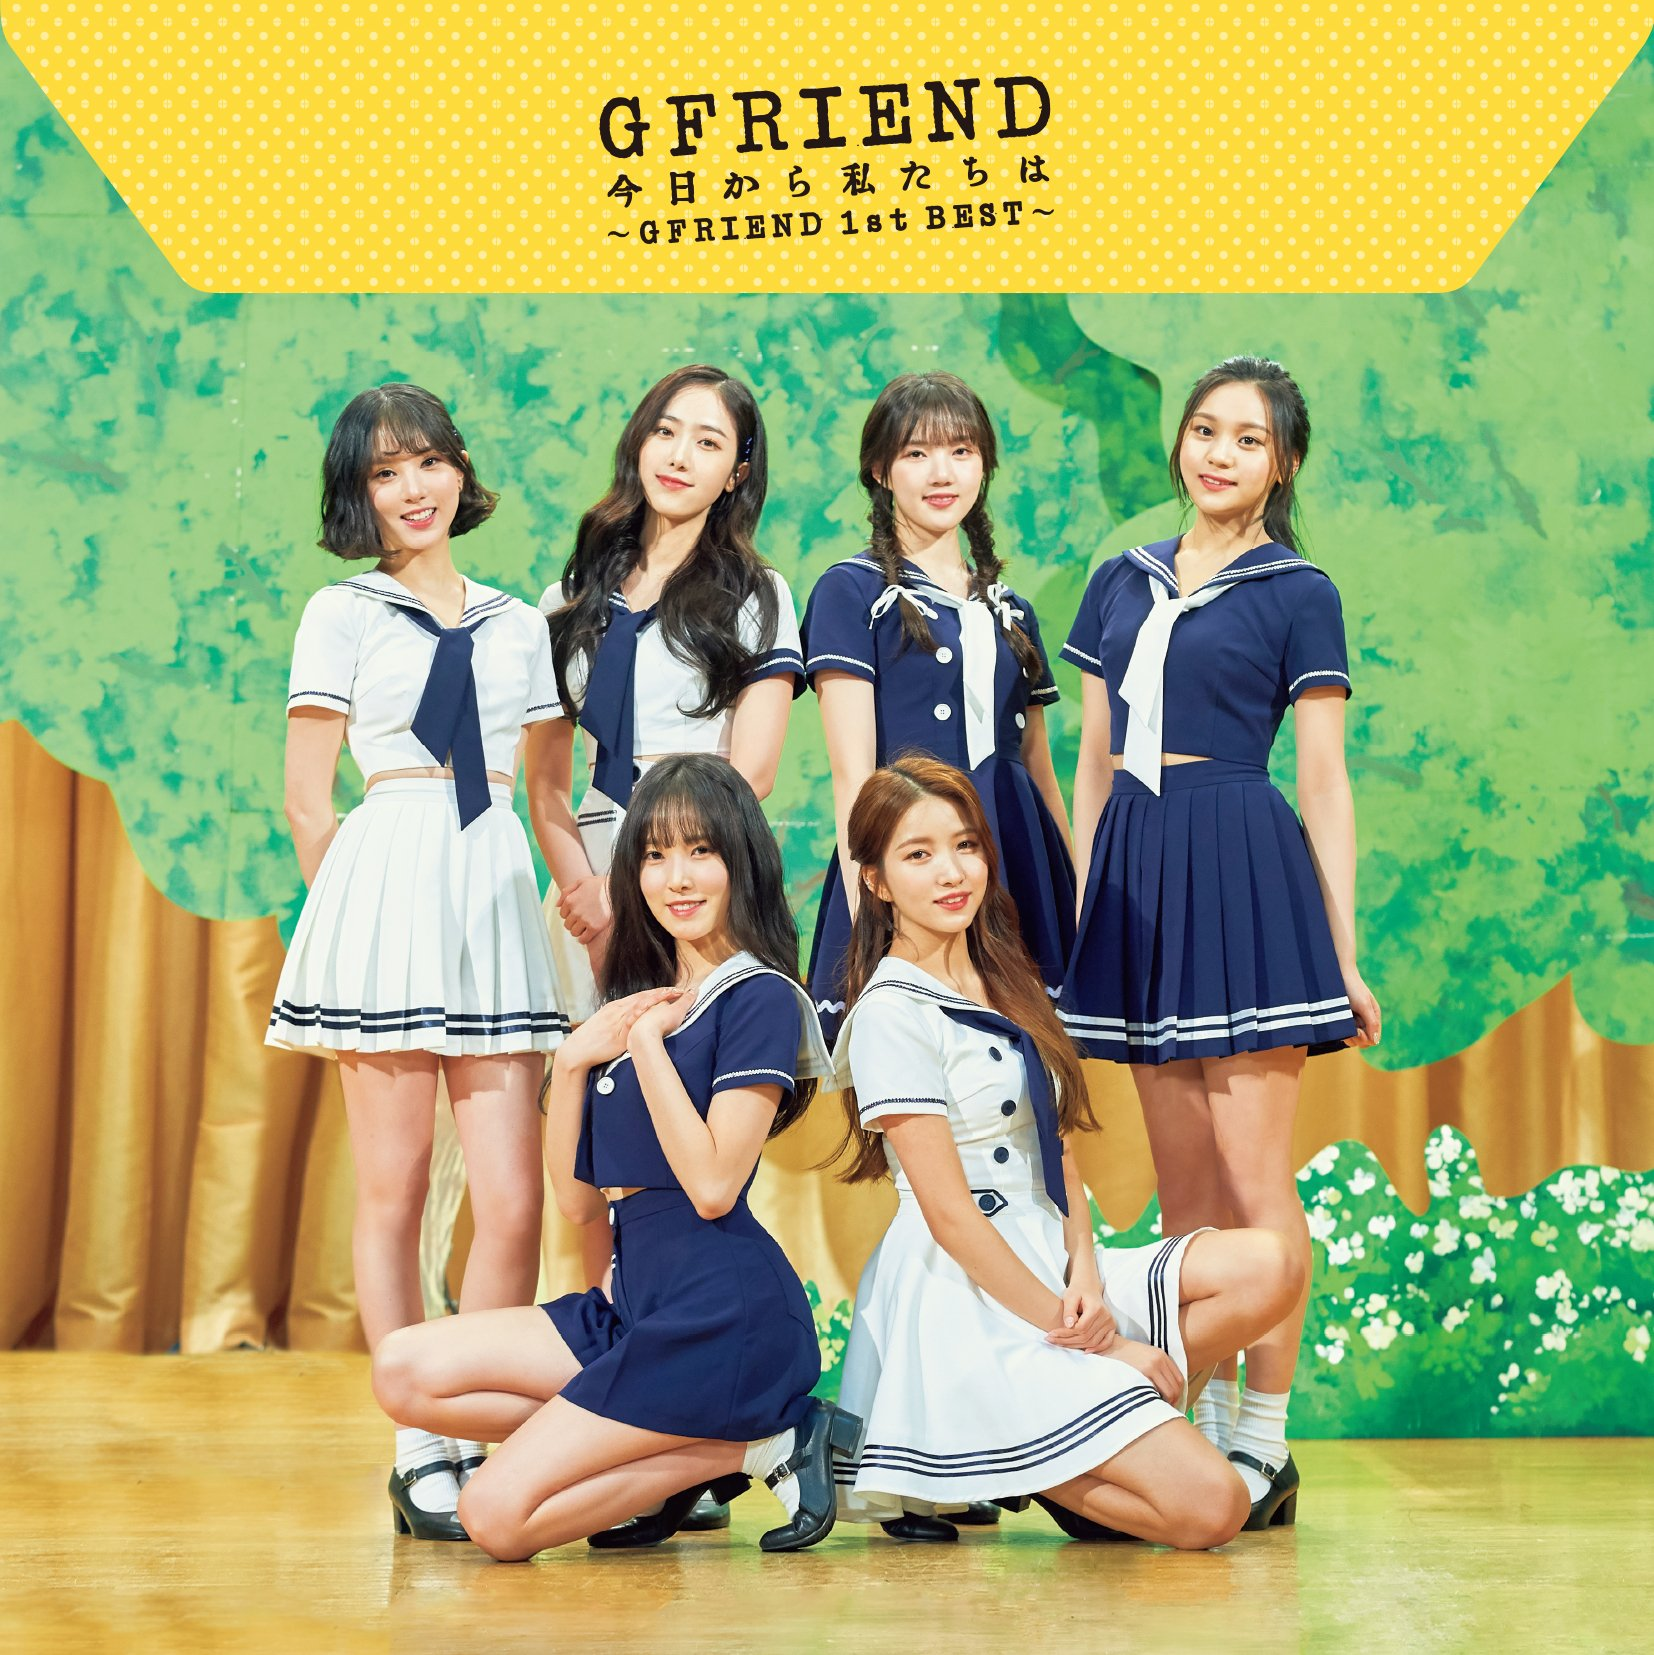 CD : Gfriend - Kyoukara Watashitachiha (Japan - Import)